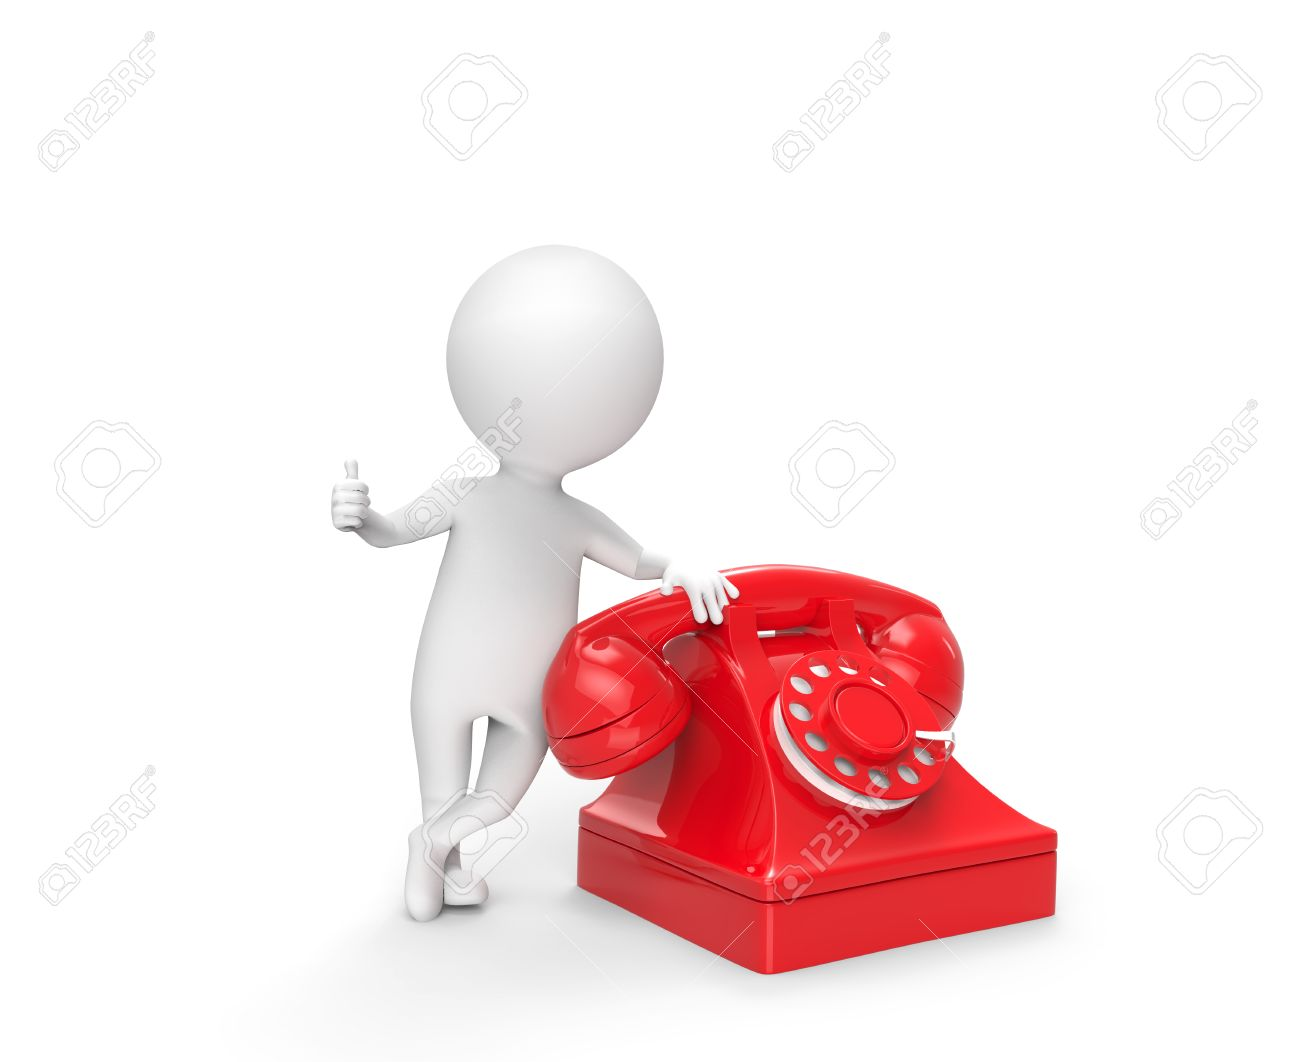 telephone interview stock photos images royalty telephone telephone interview 3d little white man stand leaning on the phone on white background stock